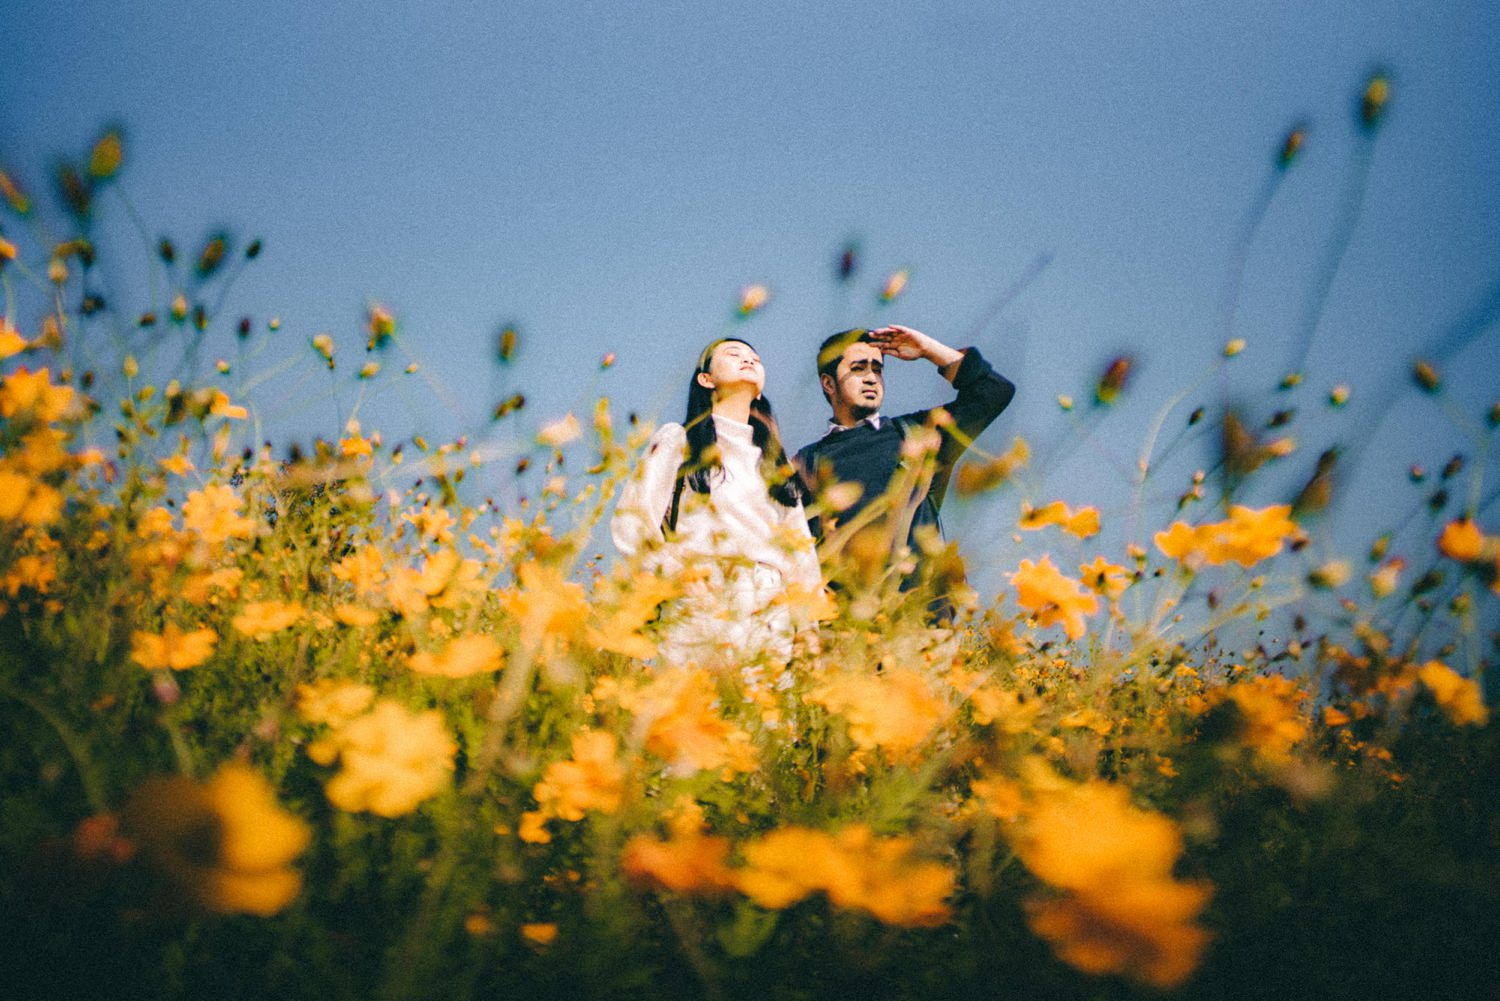 Oak St Studios - Nikko and Ven Seoul South Korea Engagement Wedding Photographer